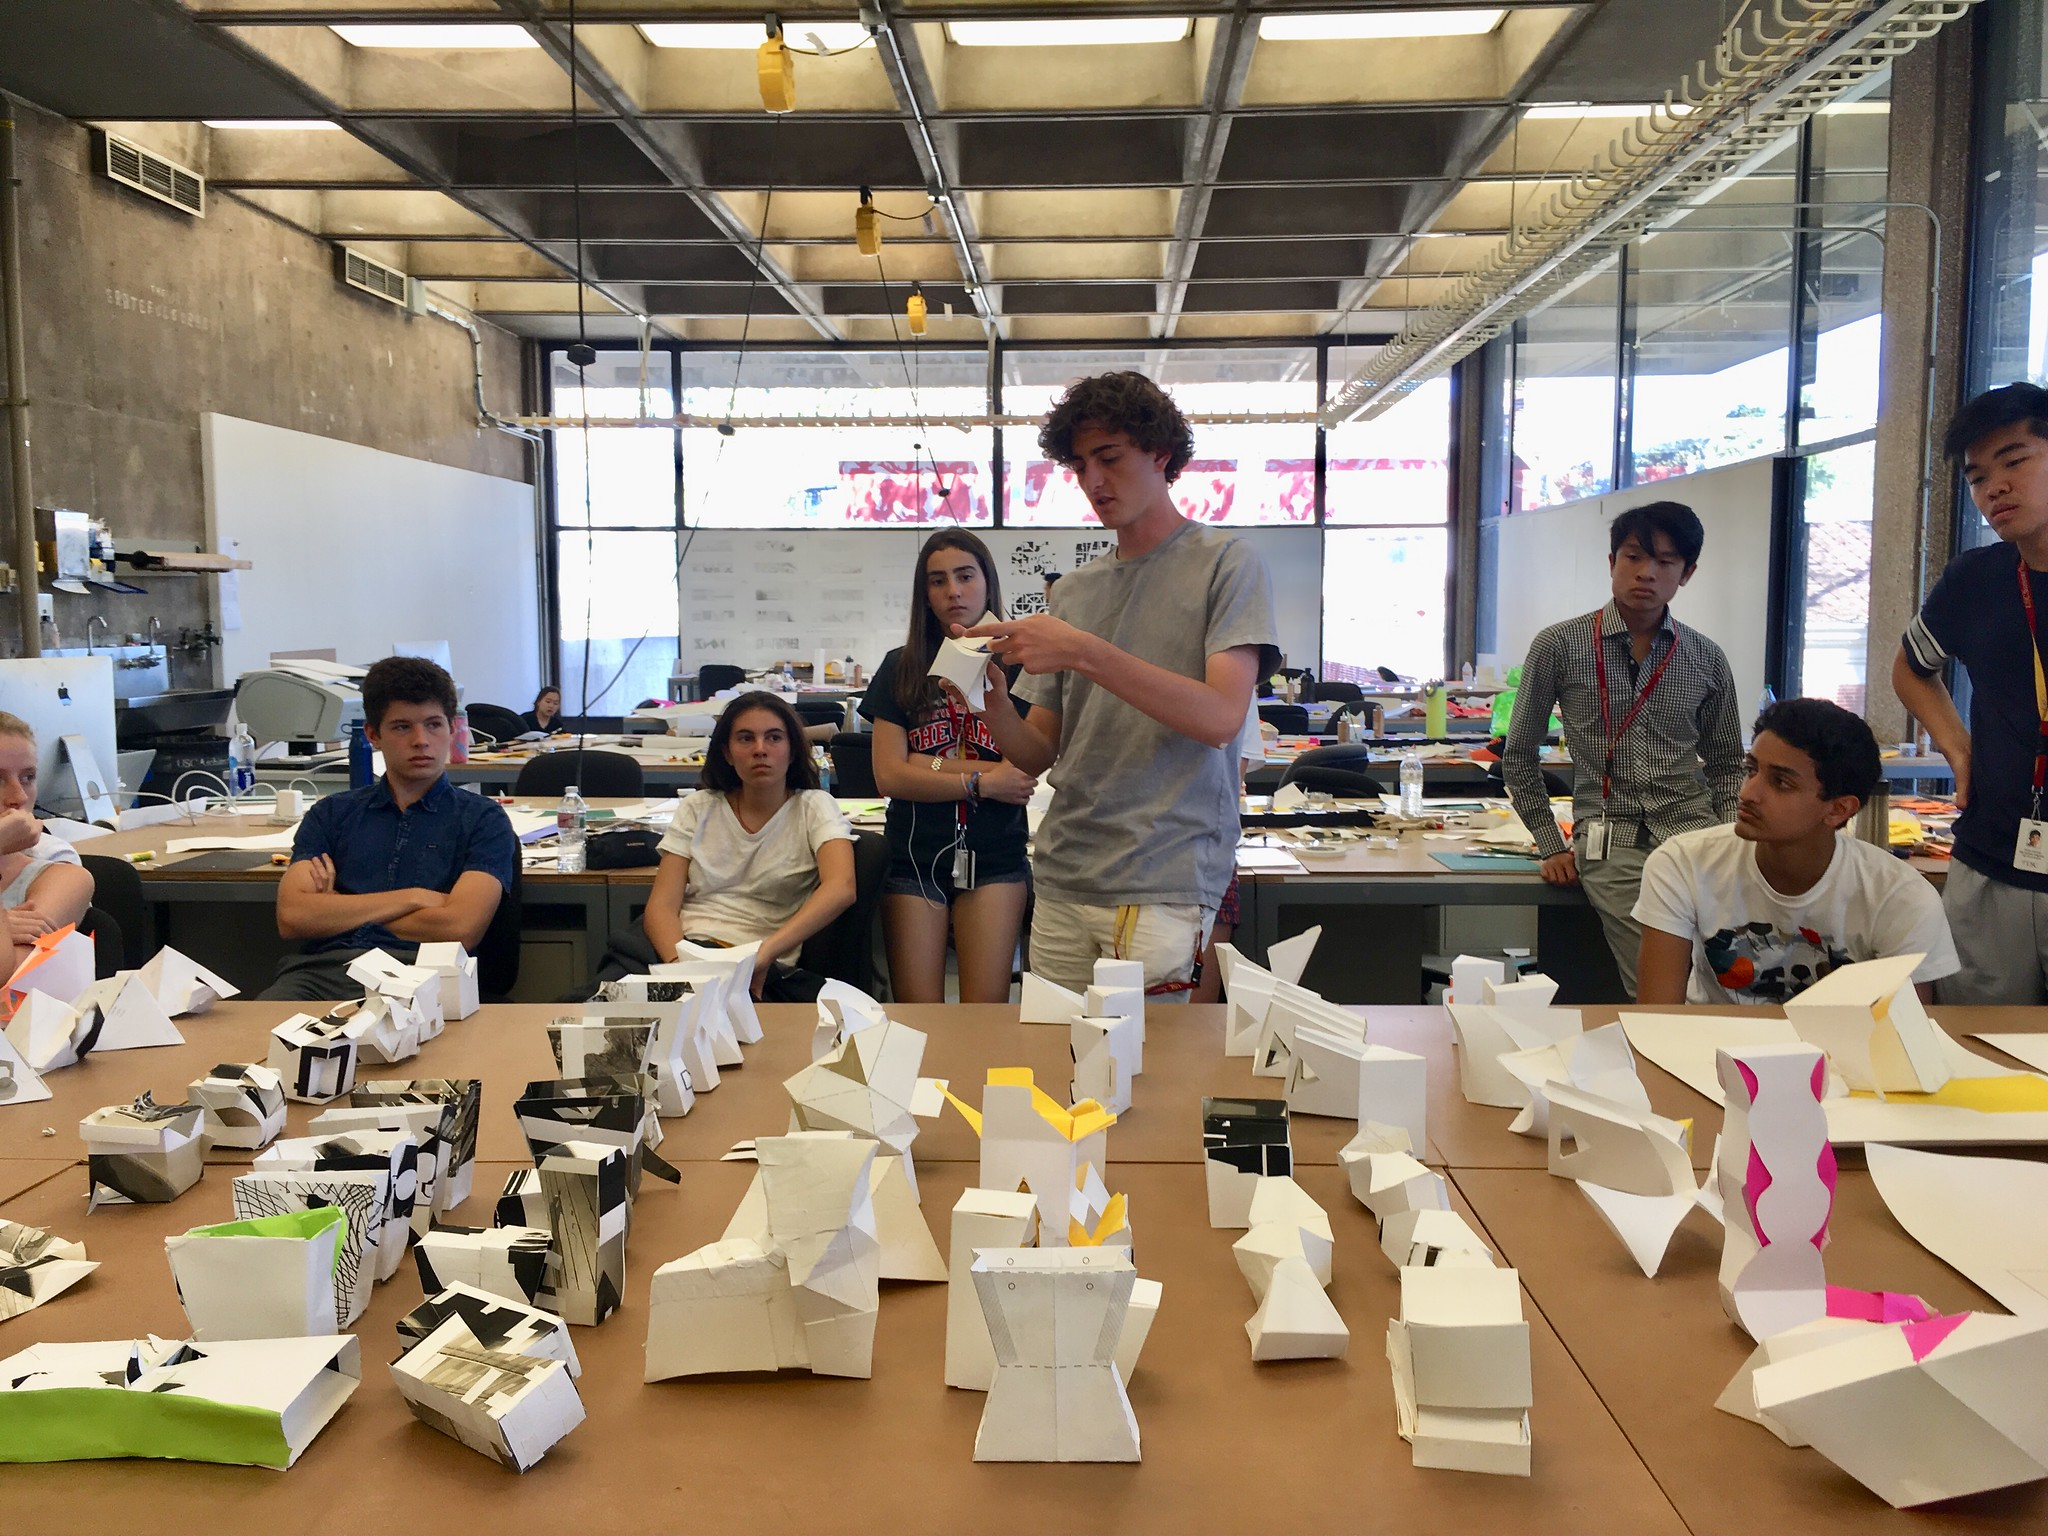 USC Summer Programs Exploration of Architecture Photo Album